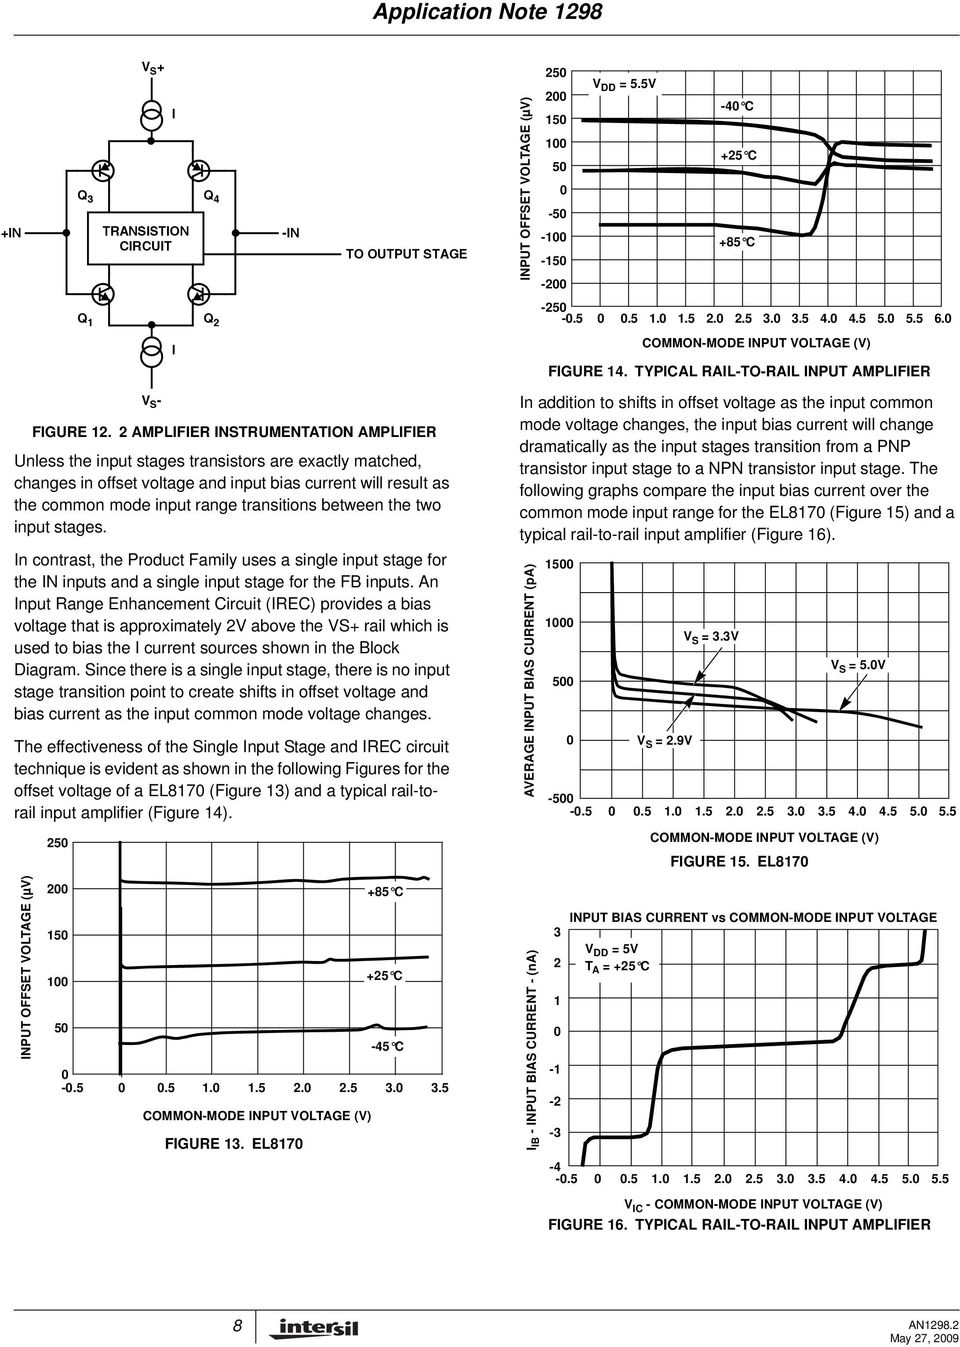 Instrumentation Amplifier Application Note Pdf Where Can You Find An With A Single Input And What Voltage Between The Two Stages In Contrast Product Family Uses